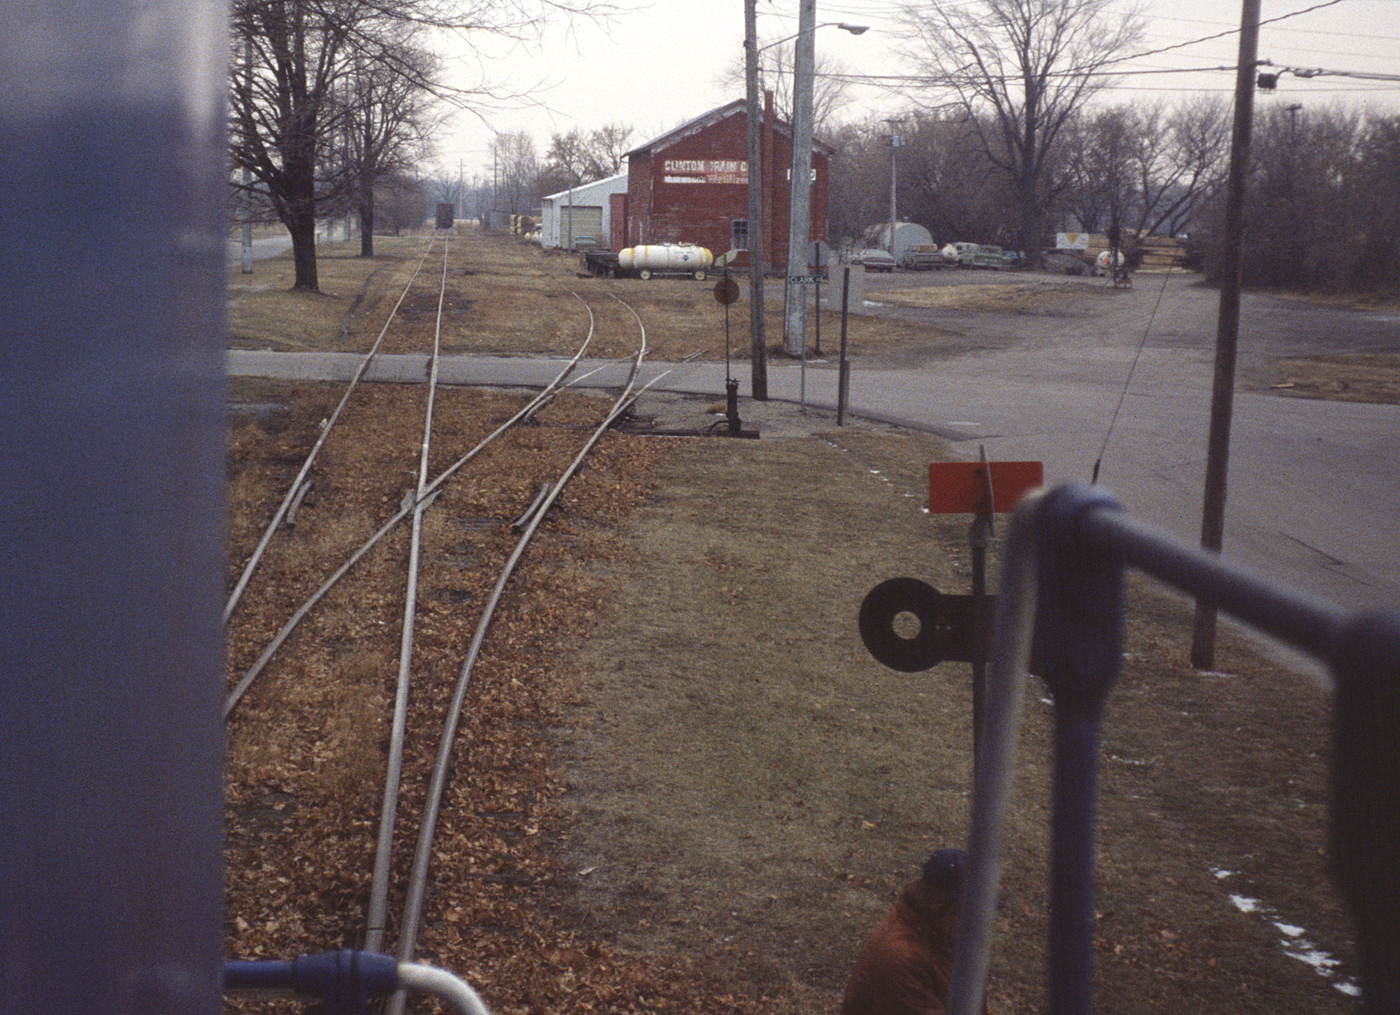 Running around some cars at Clinton, Michigan on 23 December 1980